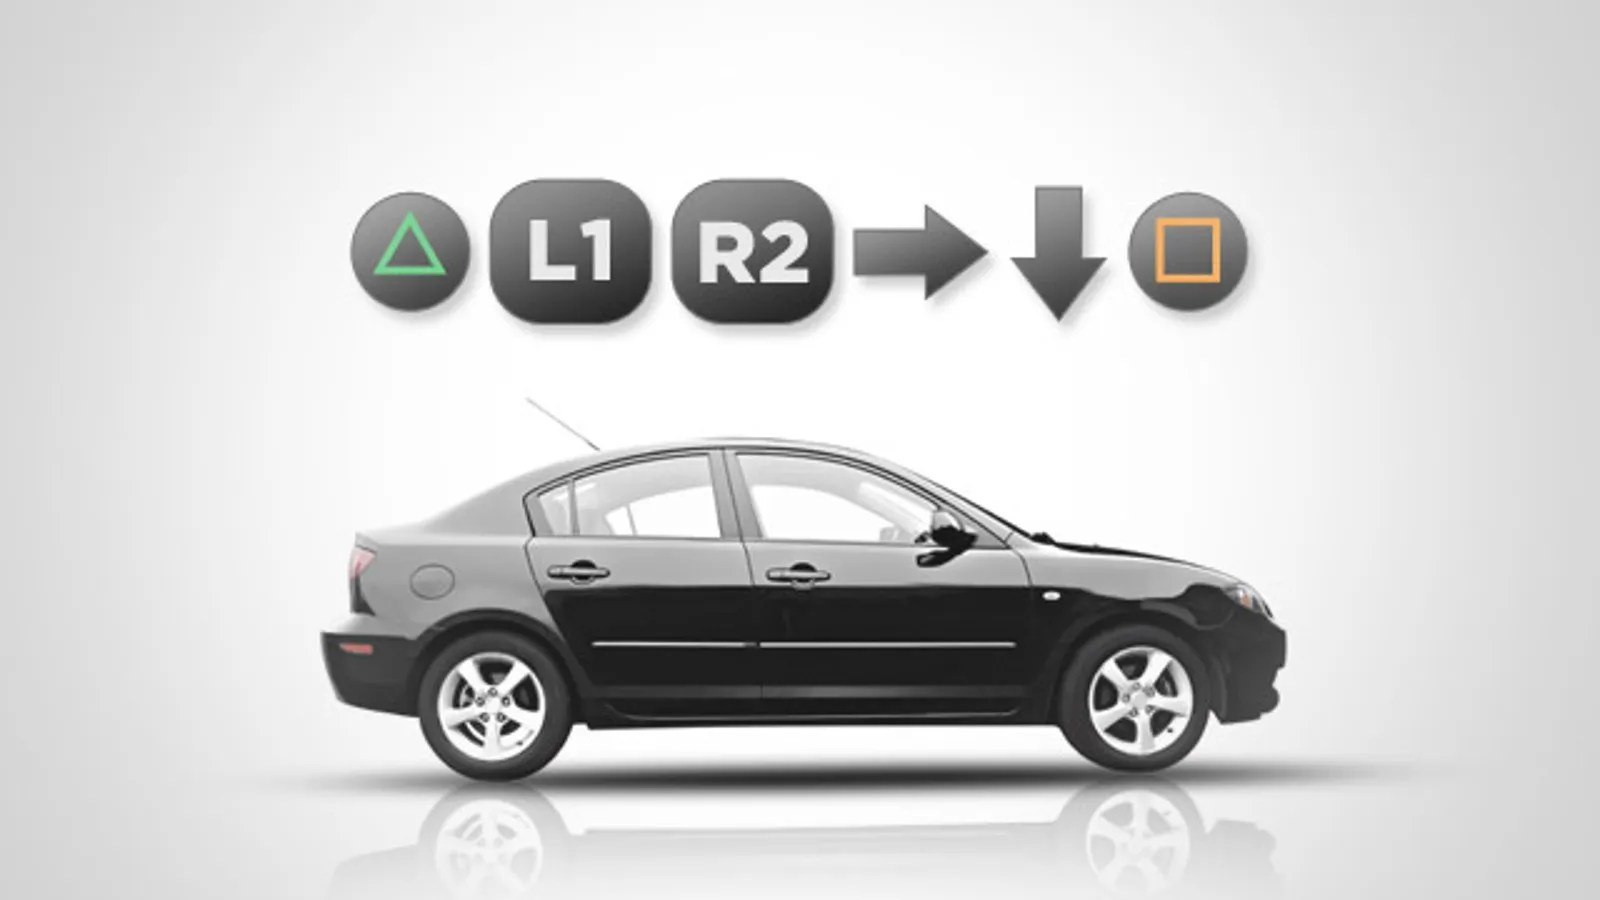 hight resolution of hack your ride cheat codes and workarounds for your car s tech annoyances